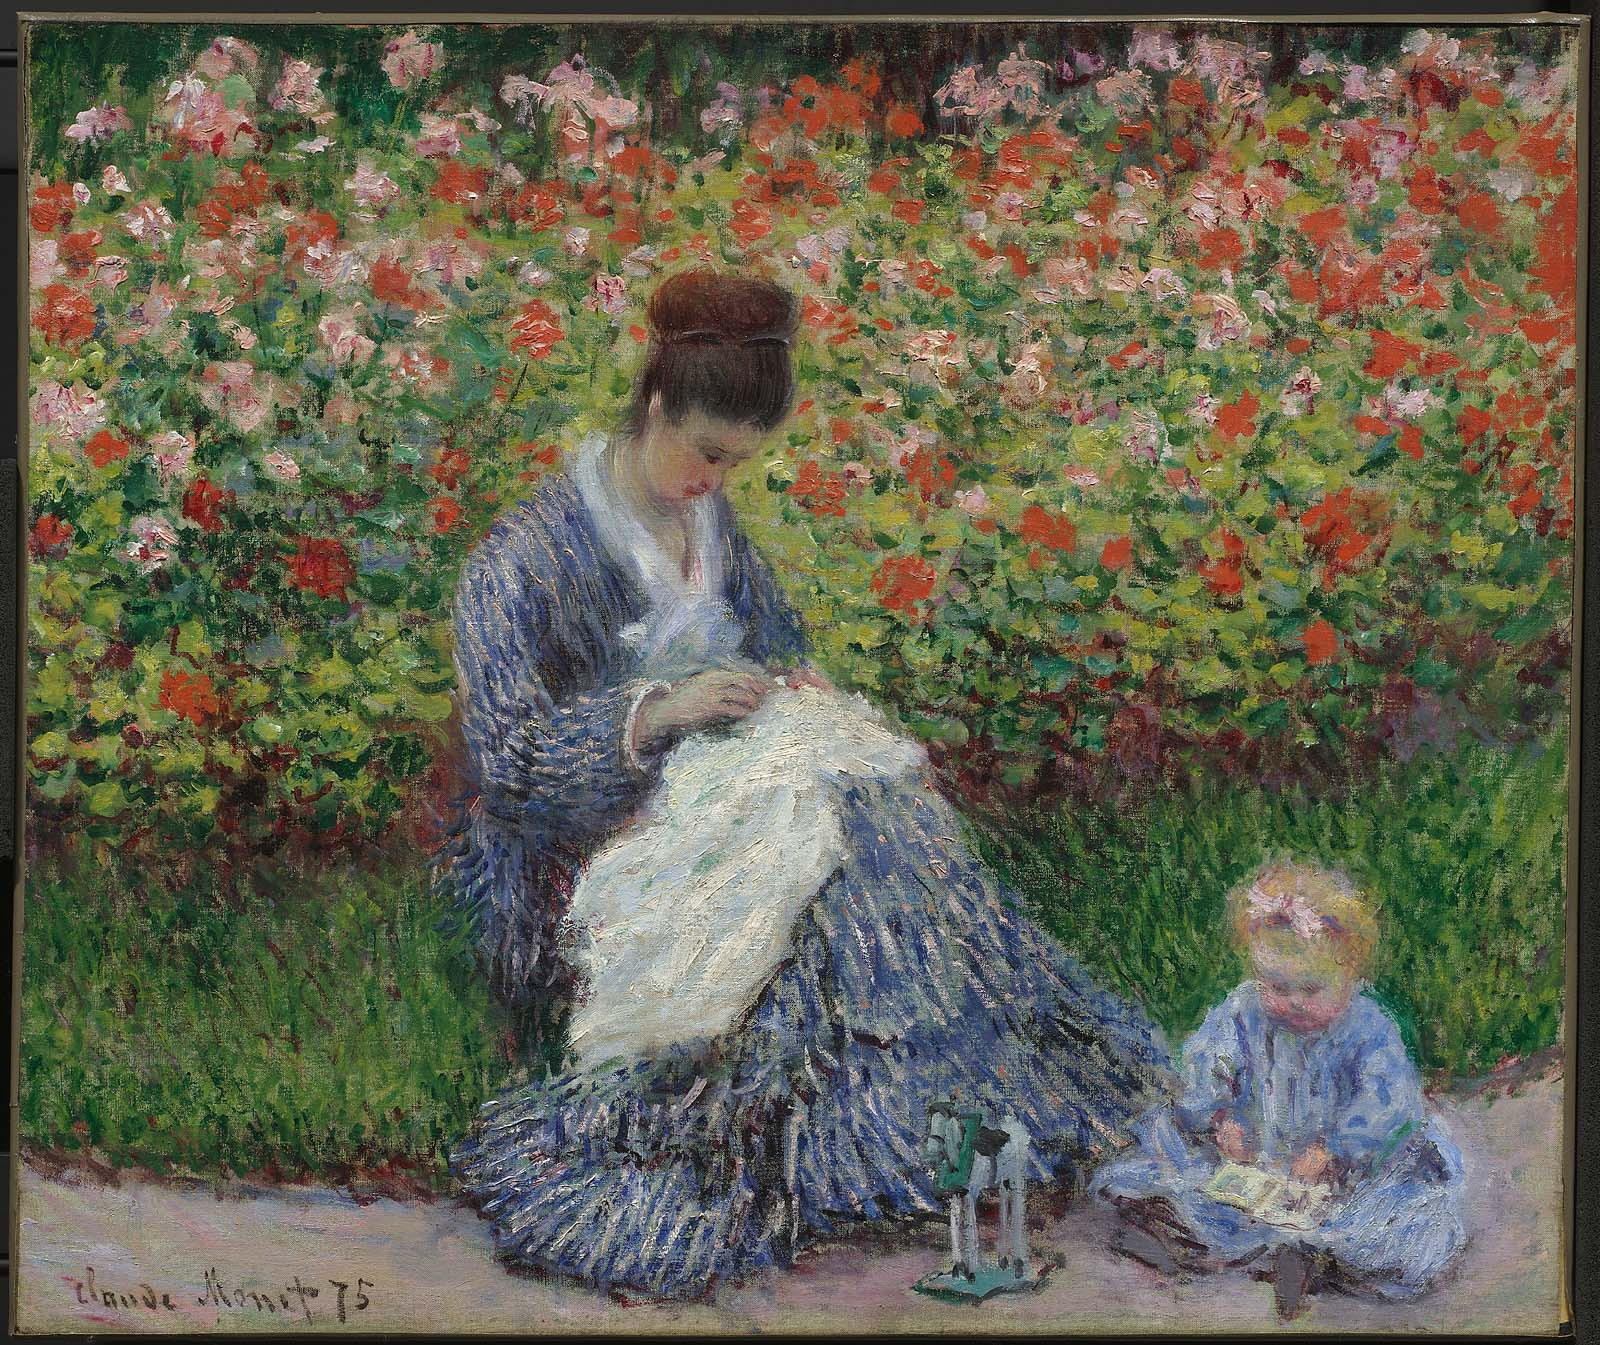 Claude Monet - Camille Monet and a Child in the Artist's Garden in Argenteuil 1875